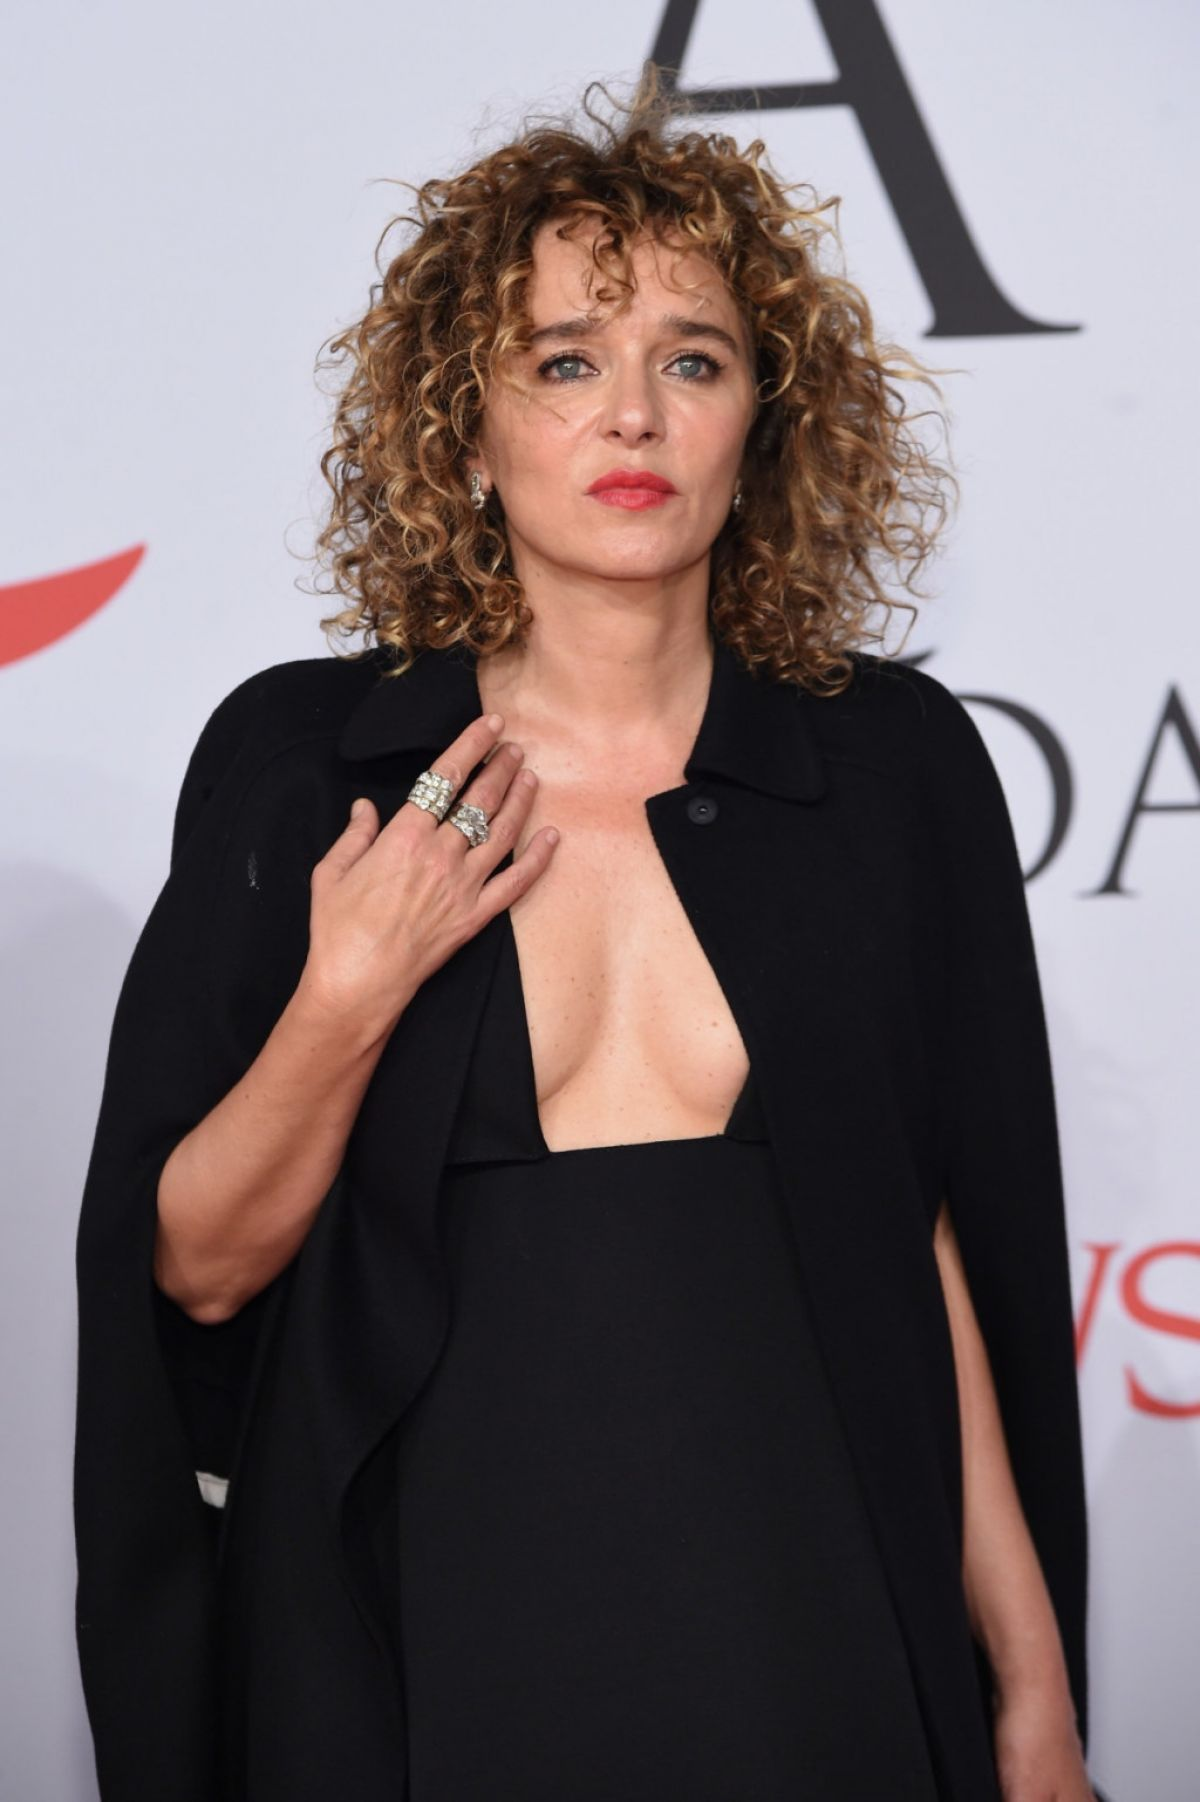 valeria golino hot shots